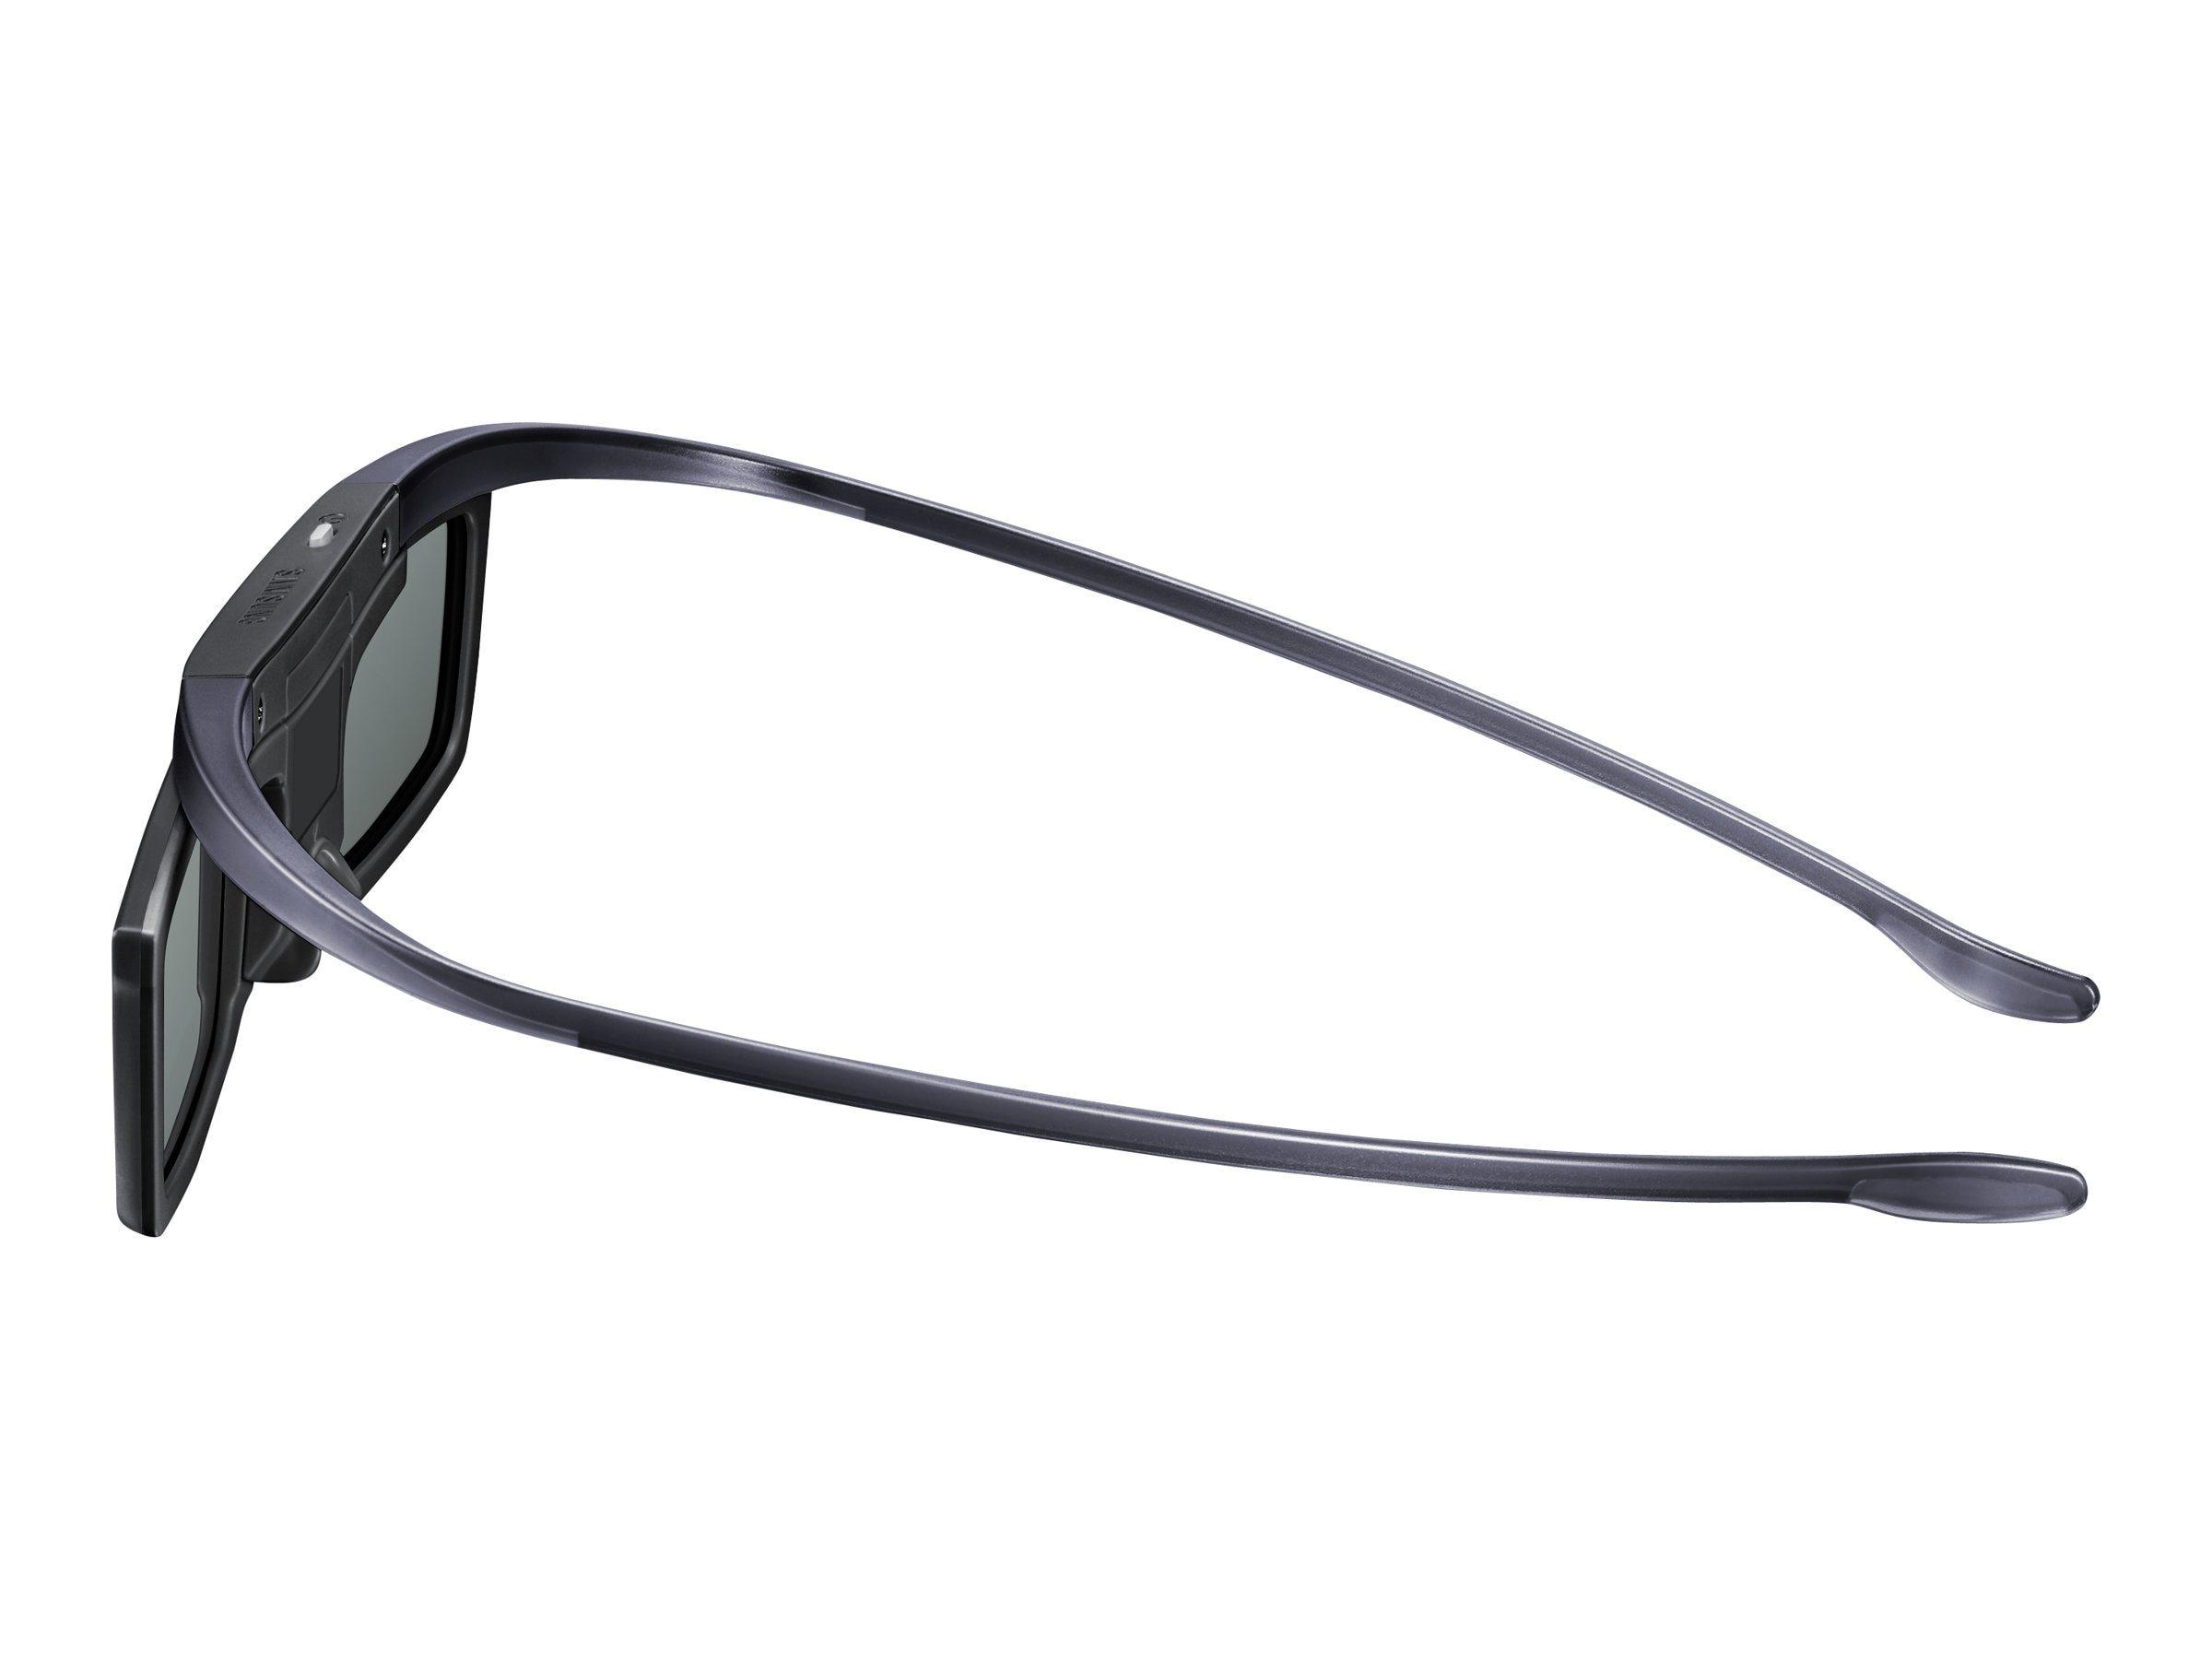 Samsung 3D Active Glasses, SSG-5150GB/ZA